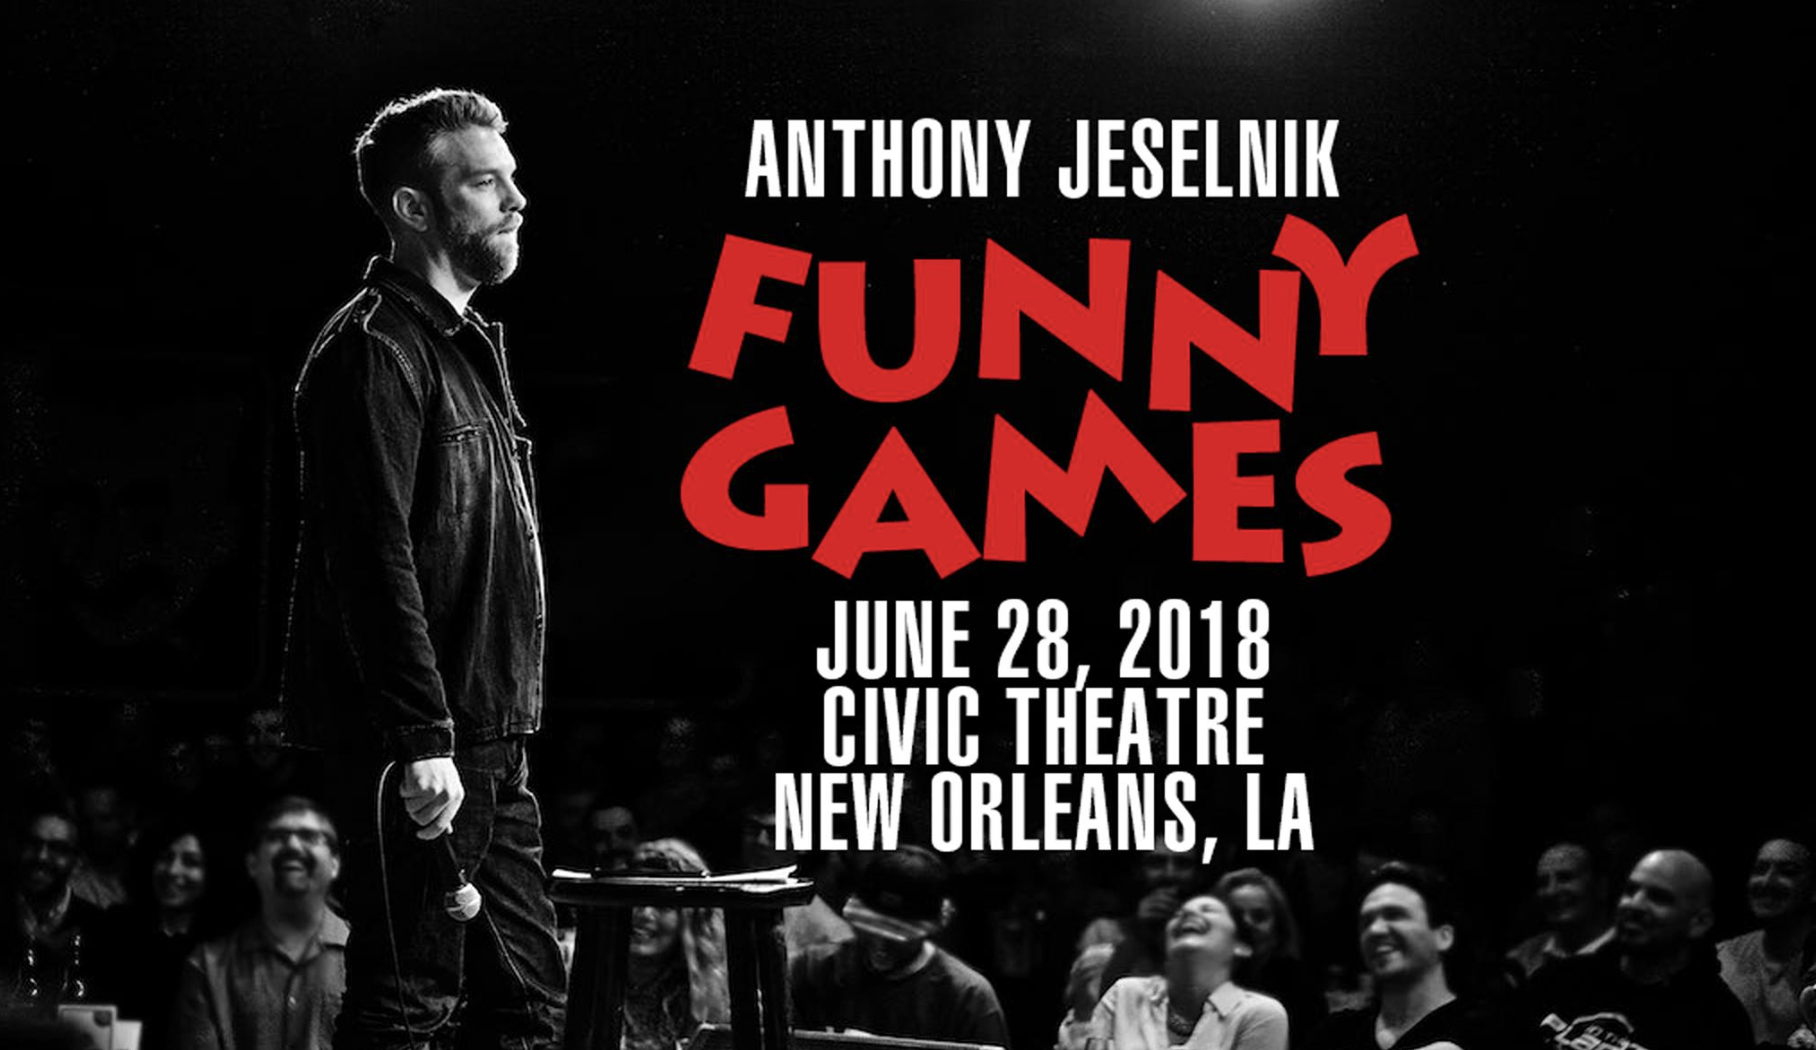 Anthony Jeselnik at the Civic Theatre